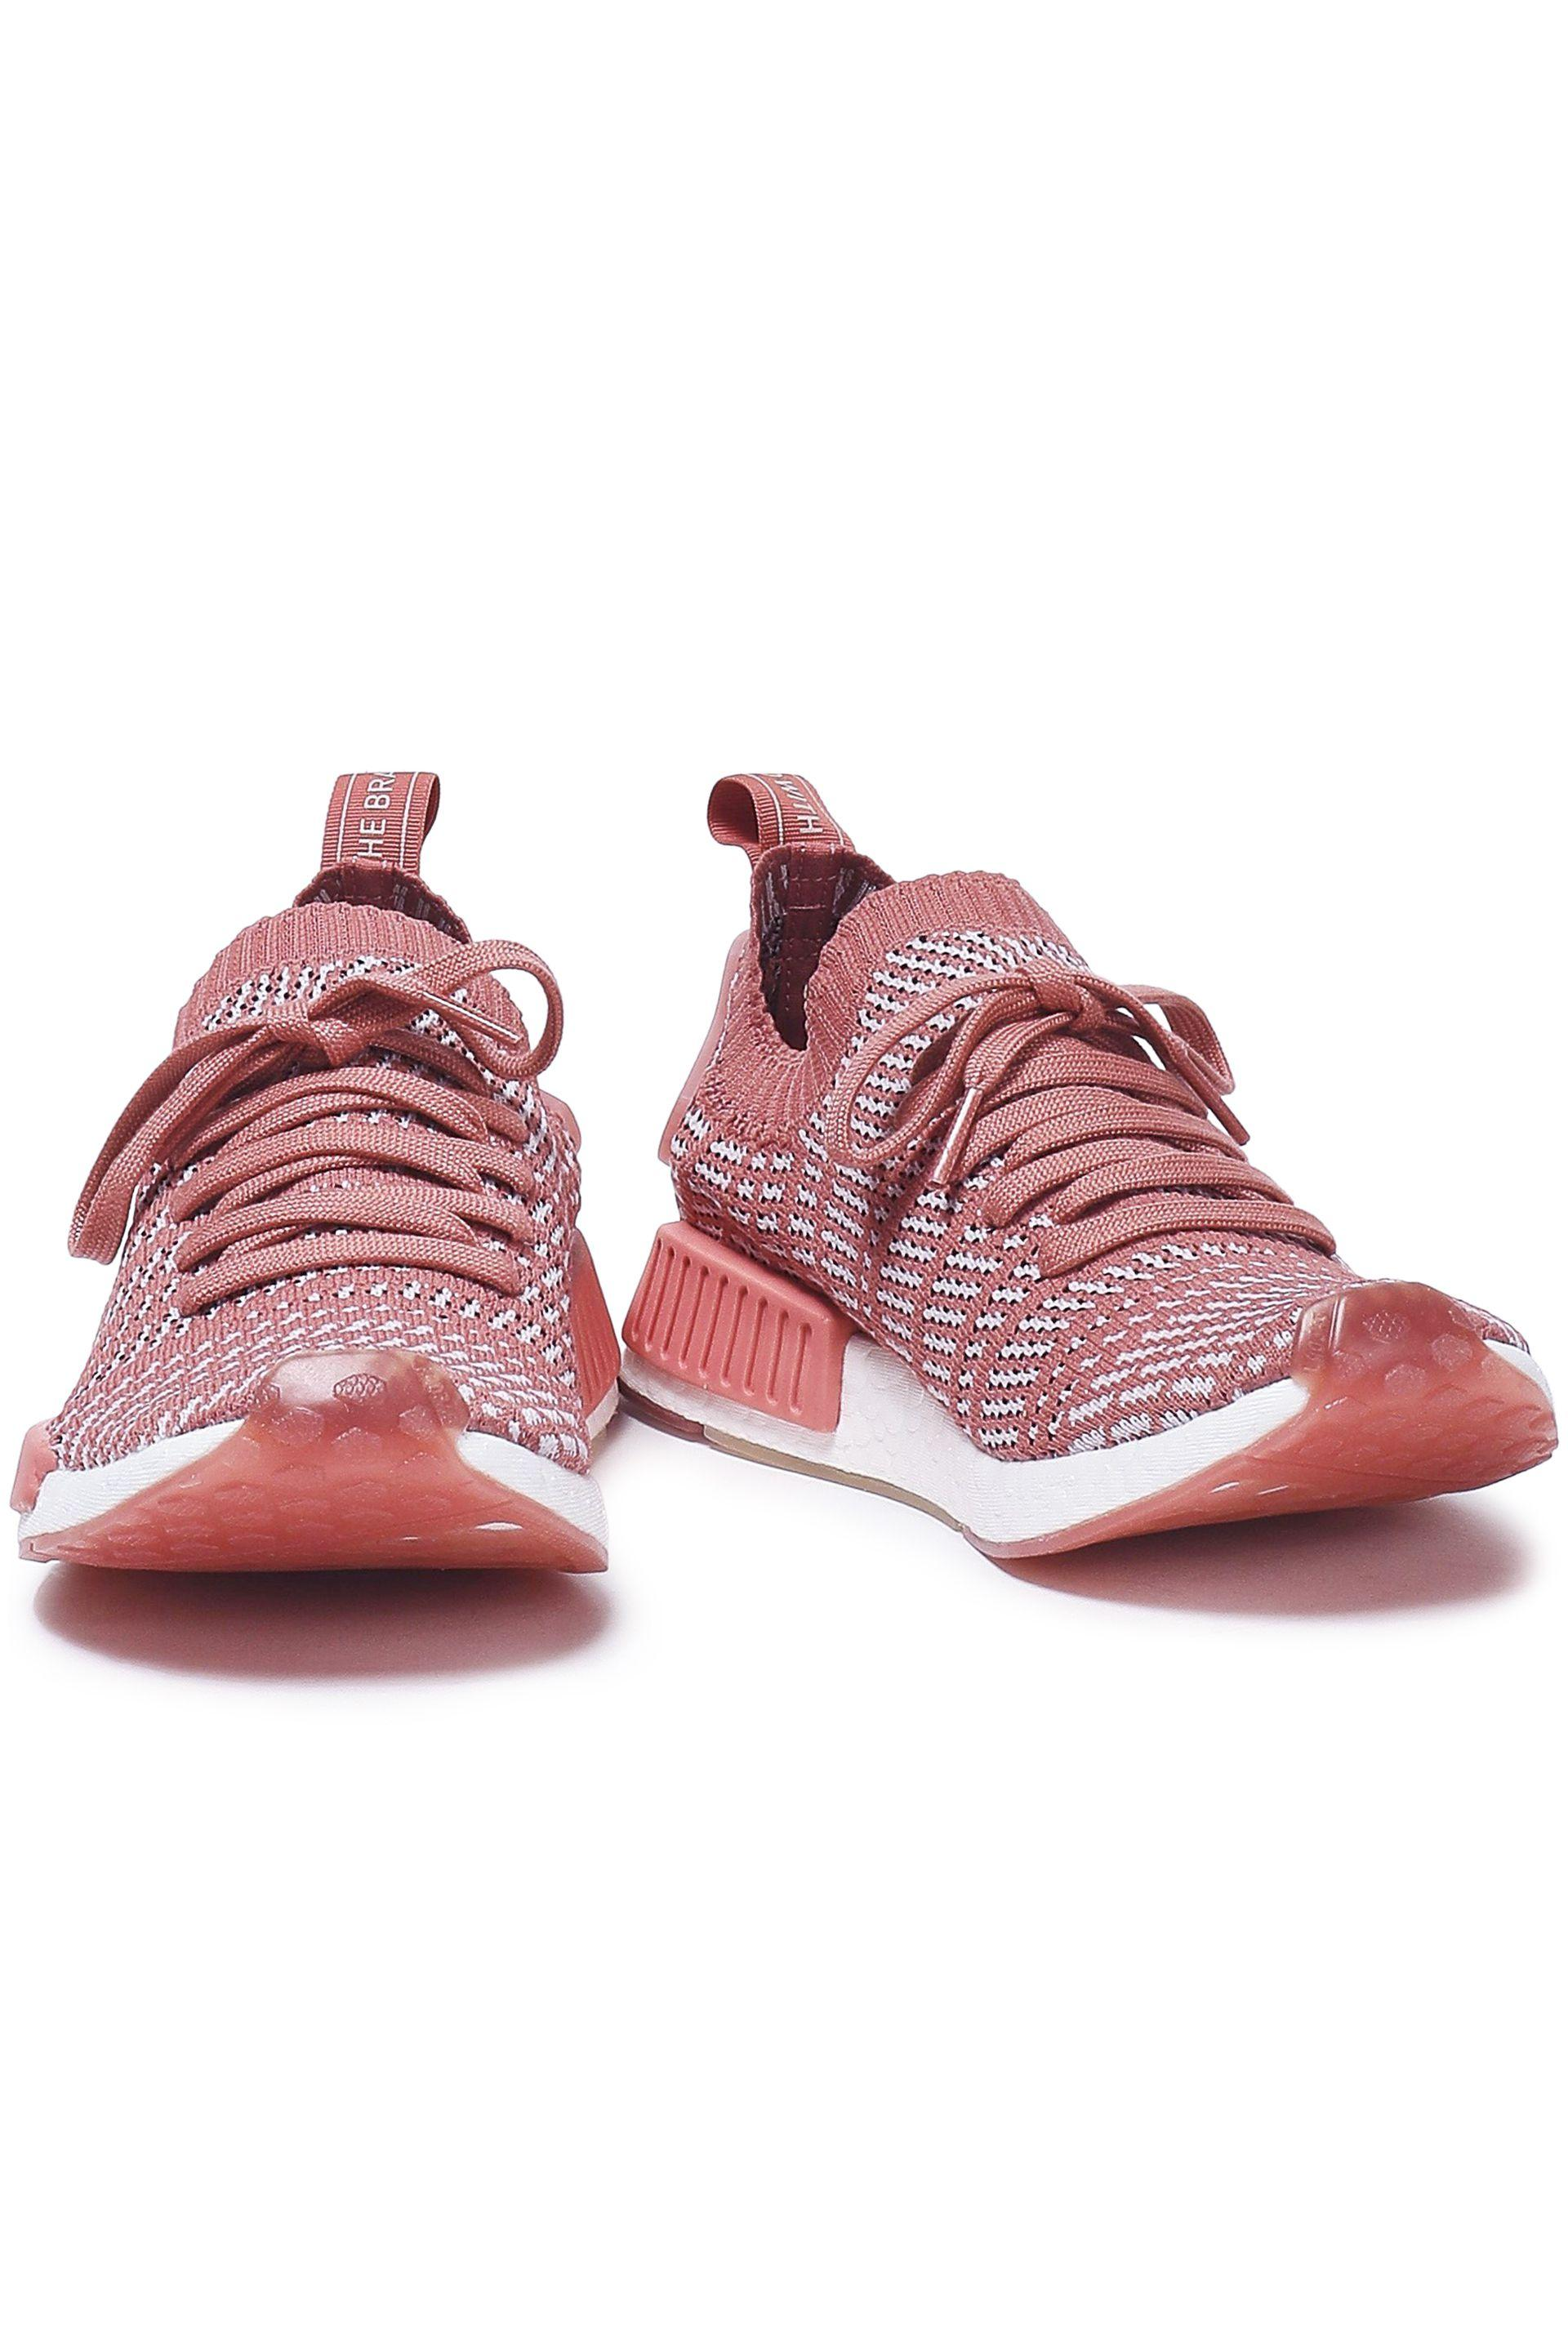 Women's Pink Nmd_r1 Stlt Stretch knit Trainers Antique Rose